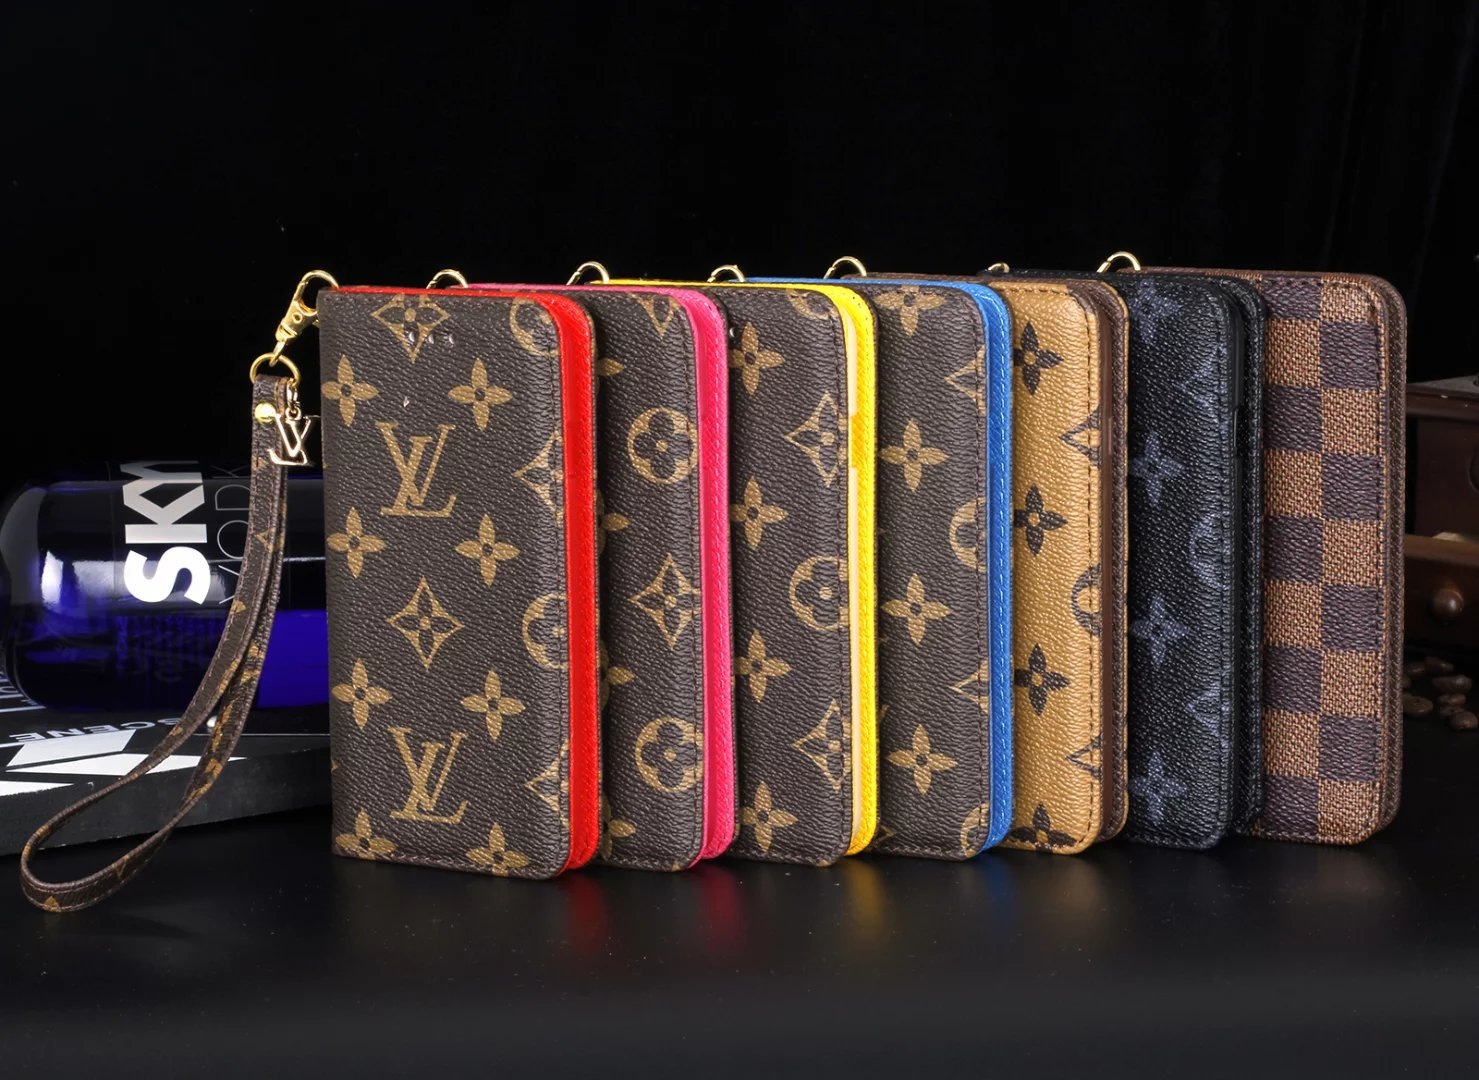 iphone hüllen iphone hülle holz Louis Vuitton iphone6s hülle freitag hülle iphone 6s iphone 6s hülle silikon smartphone tasche 6slber machen hülle für i phone 6s handy hülle für iphone 6s individuelle smartphone hülle